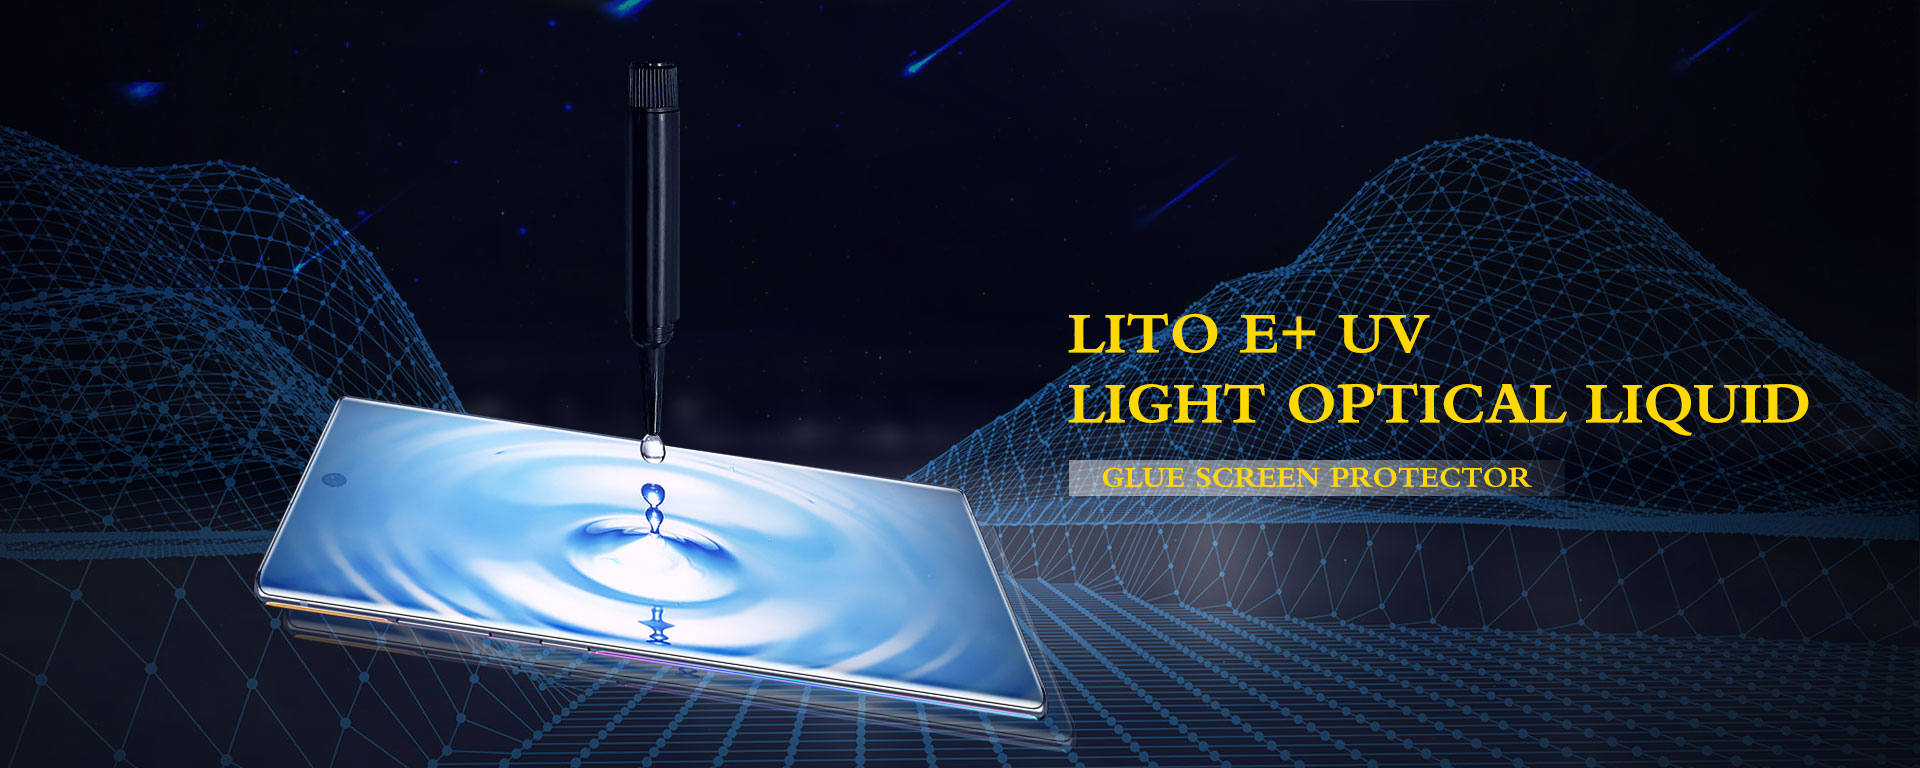 LITO E+ UV Light Optical Liquid Glue Screen Protector